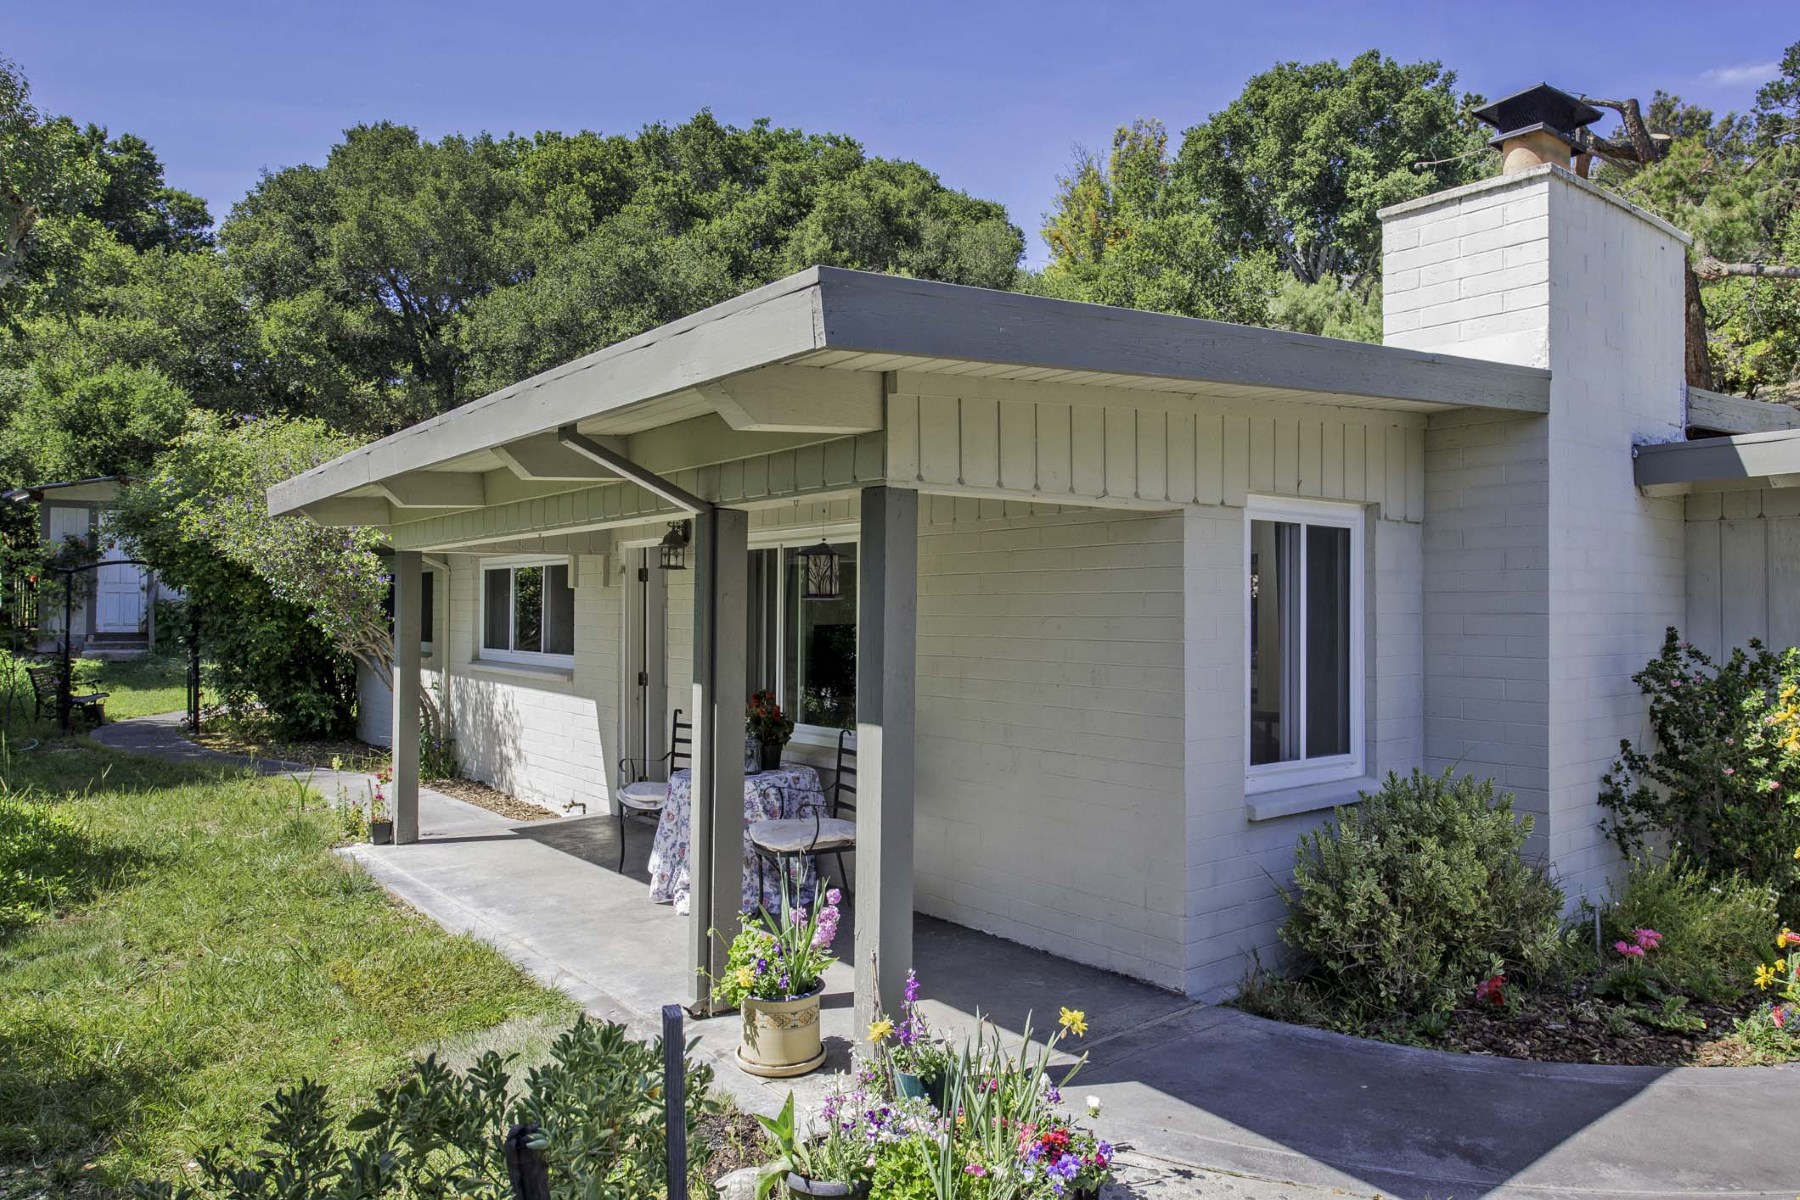 Single Family Home for Sale at Beautiful Carmel Valley Country Living 22 Valle Vista Carmel Valley, California, 93924 United States